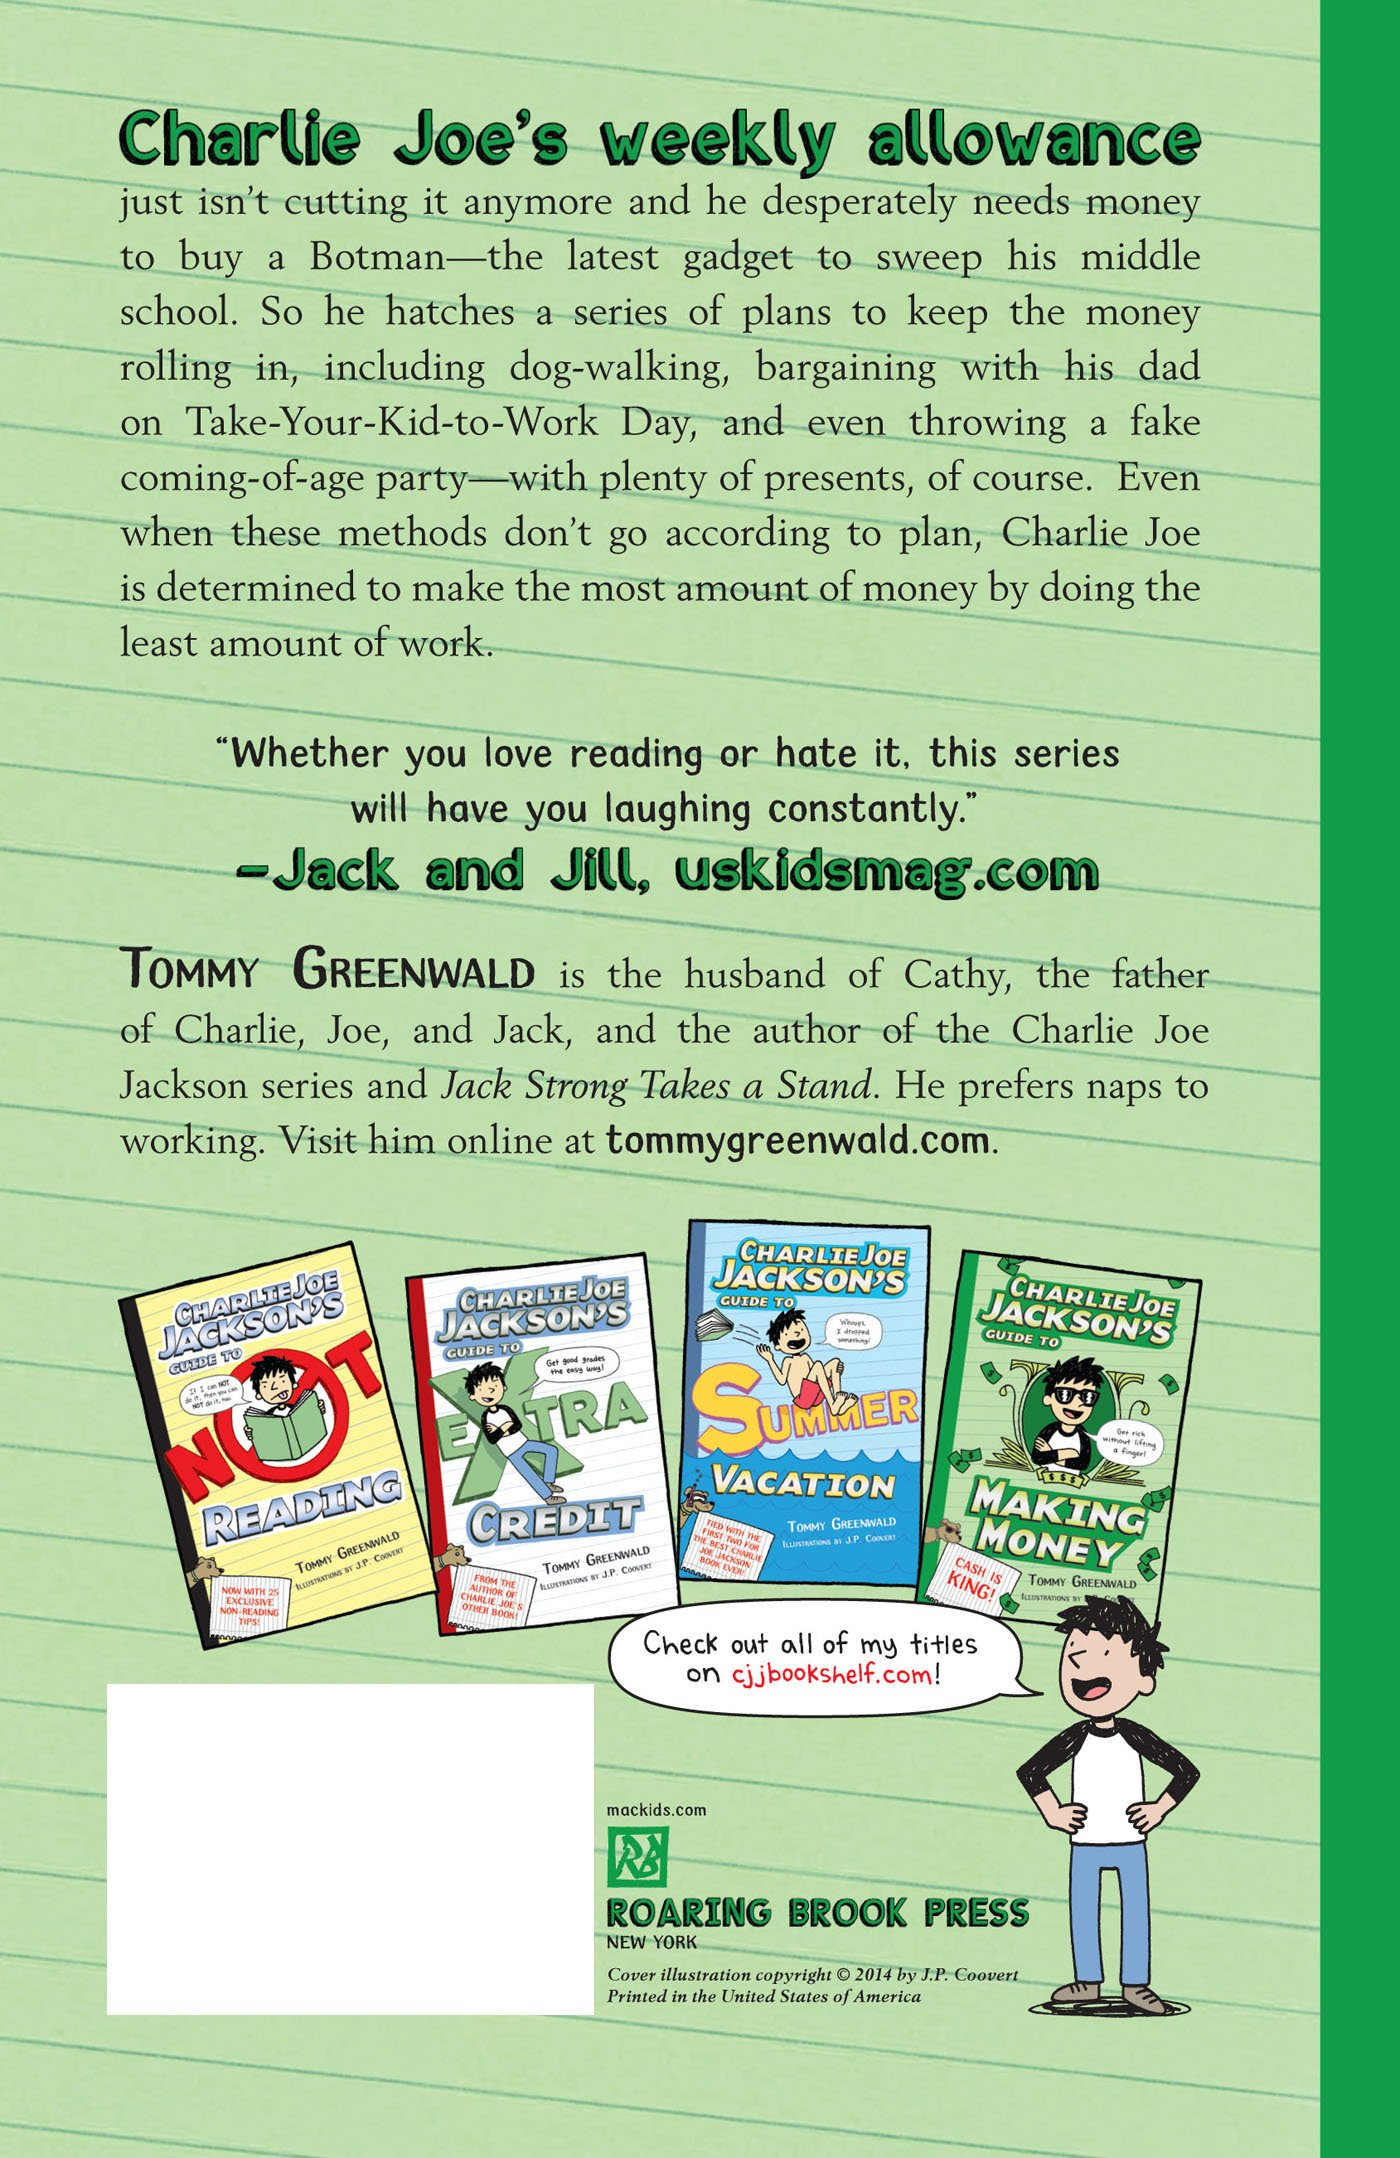 Charlie Joe Jackson's Guide to Making Money (Charlie Joe Jackson Series) by Roaring Brook Press (Image #2)